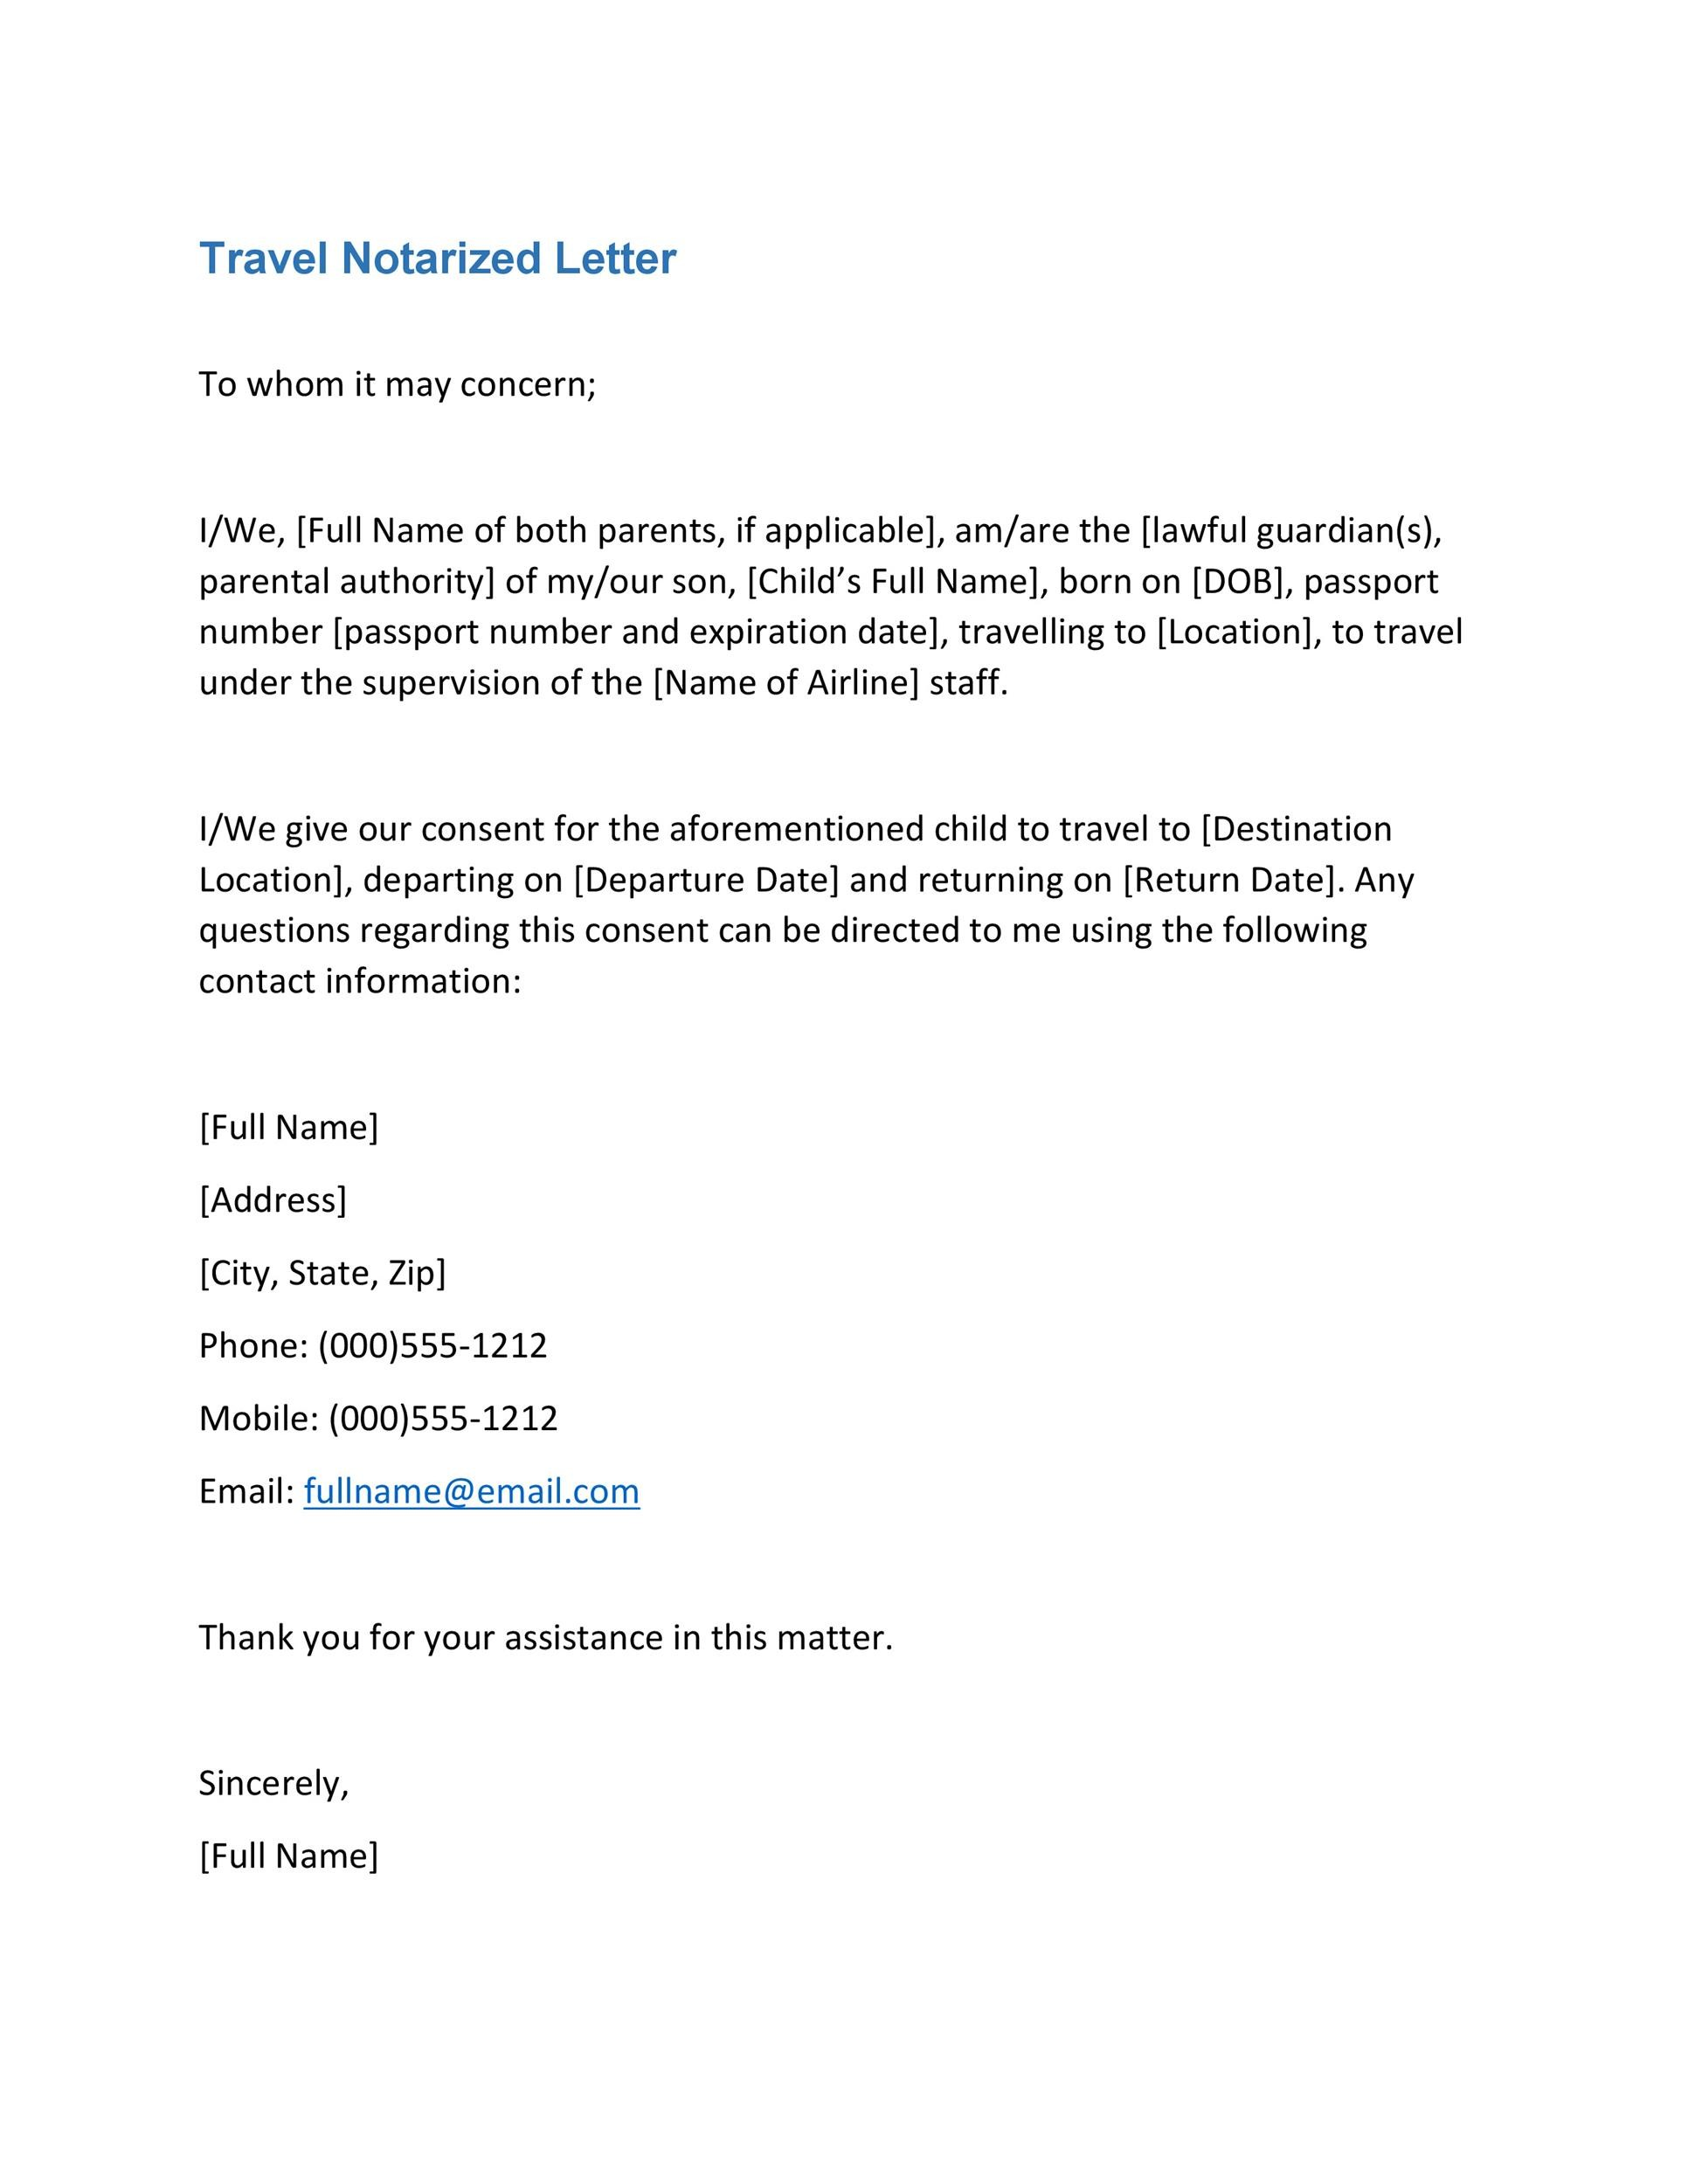 Gift letter template 30 professional notarized letter templates 30 professional notarized letter templates template lab negle